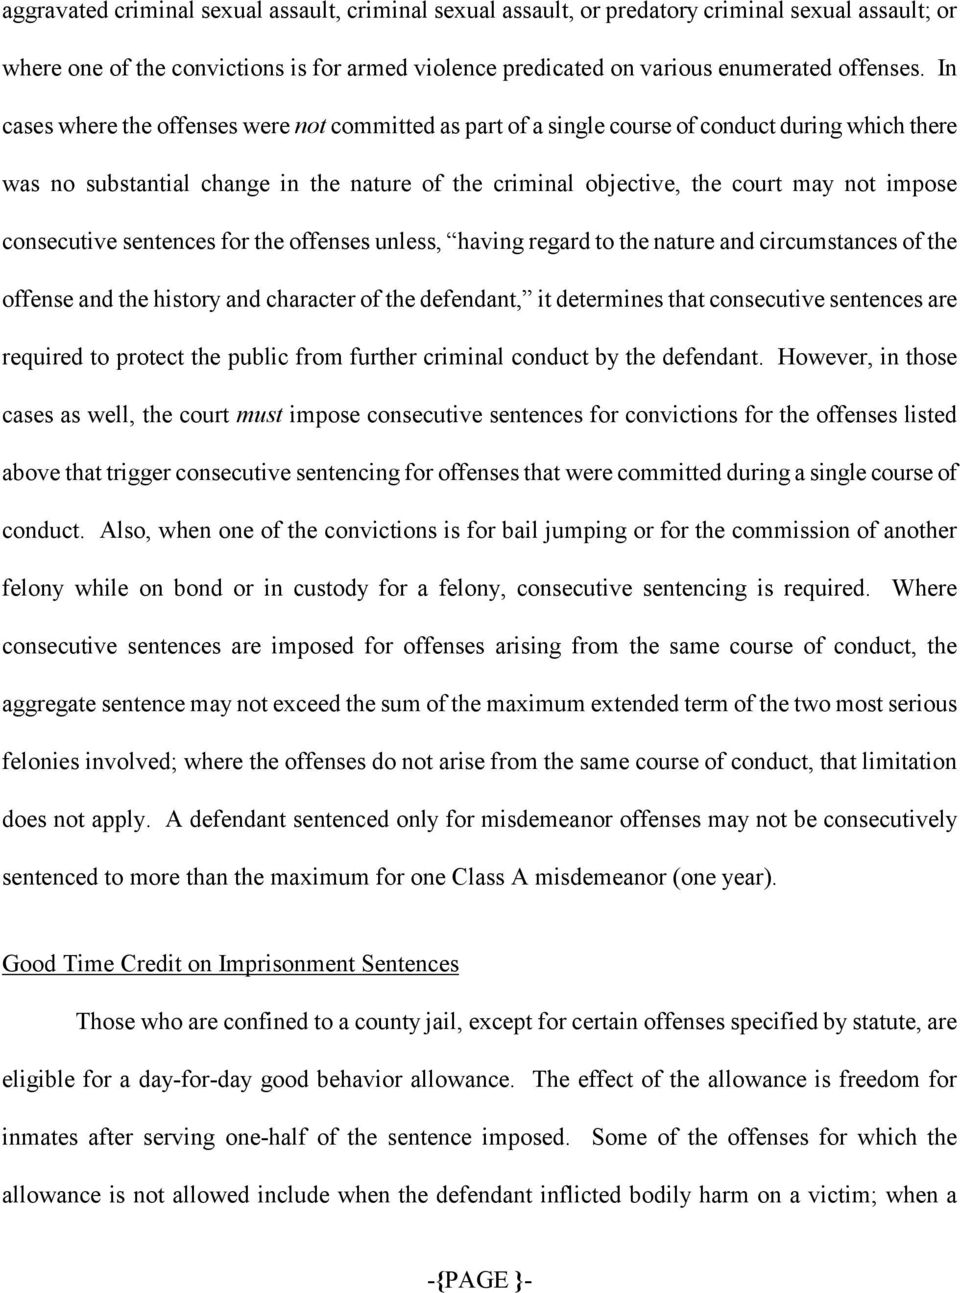 consecutive sentences for the offenses unless, having regard to the nature and circumstances of the offense and the history and character of the defendant, it determines that consecutive sentences